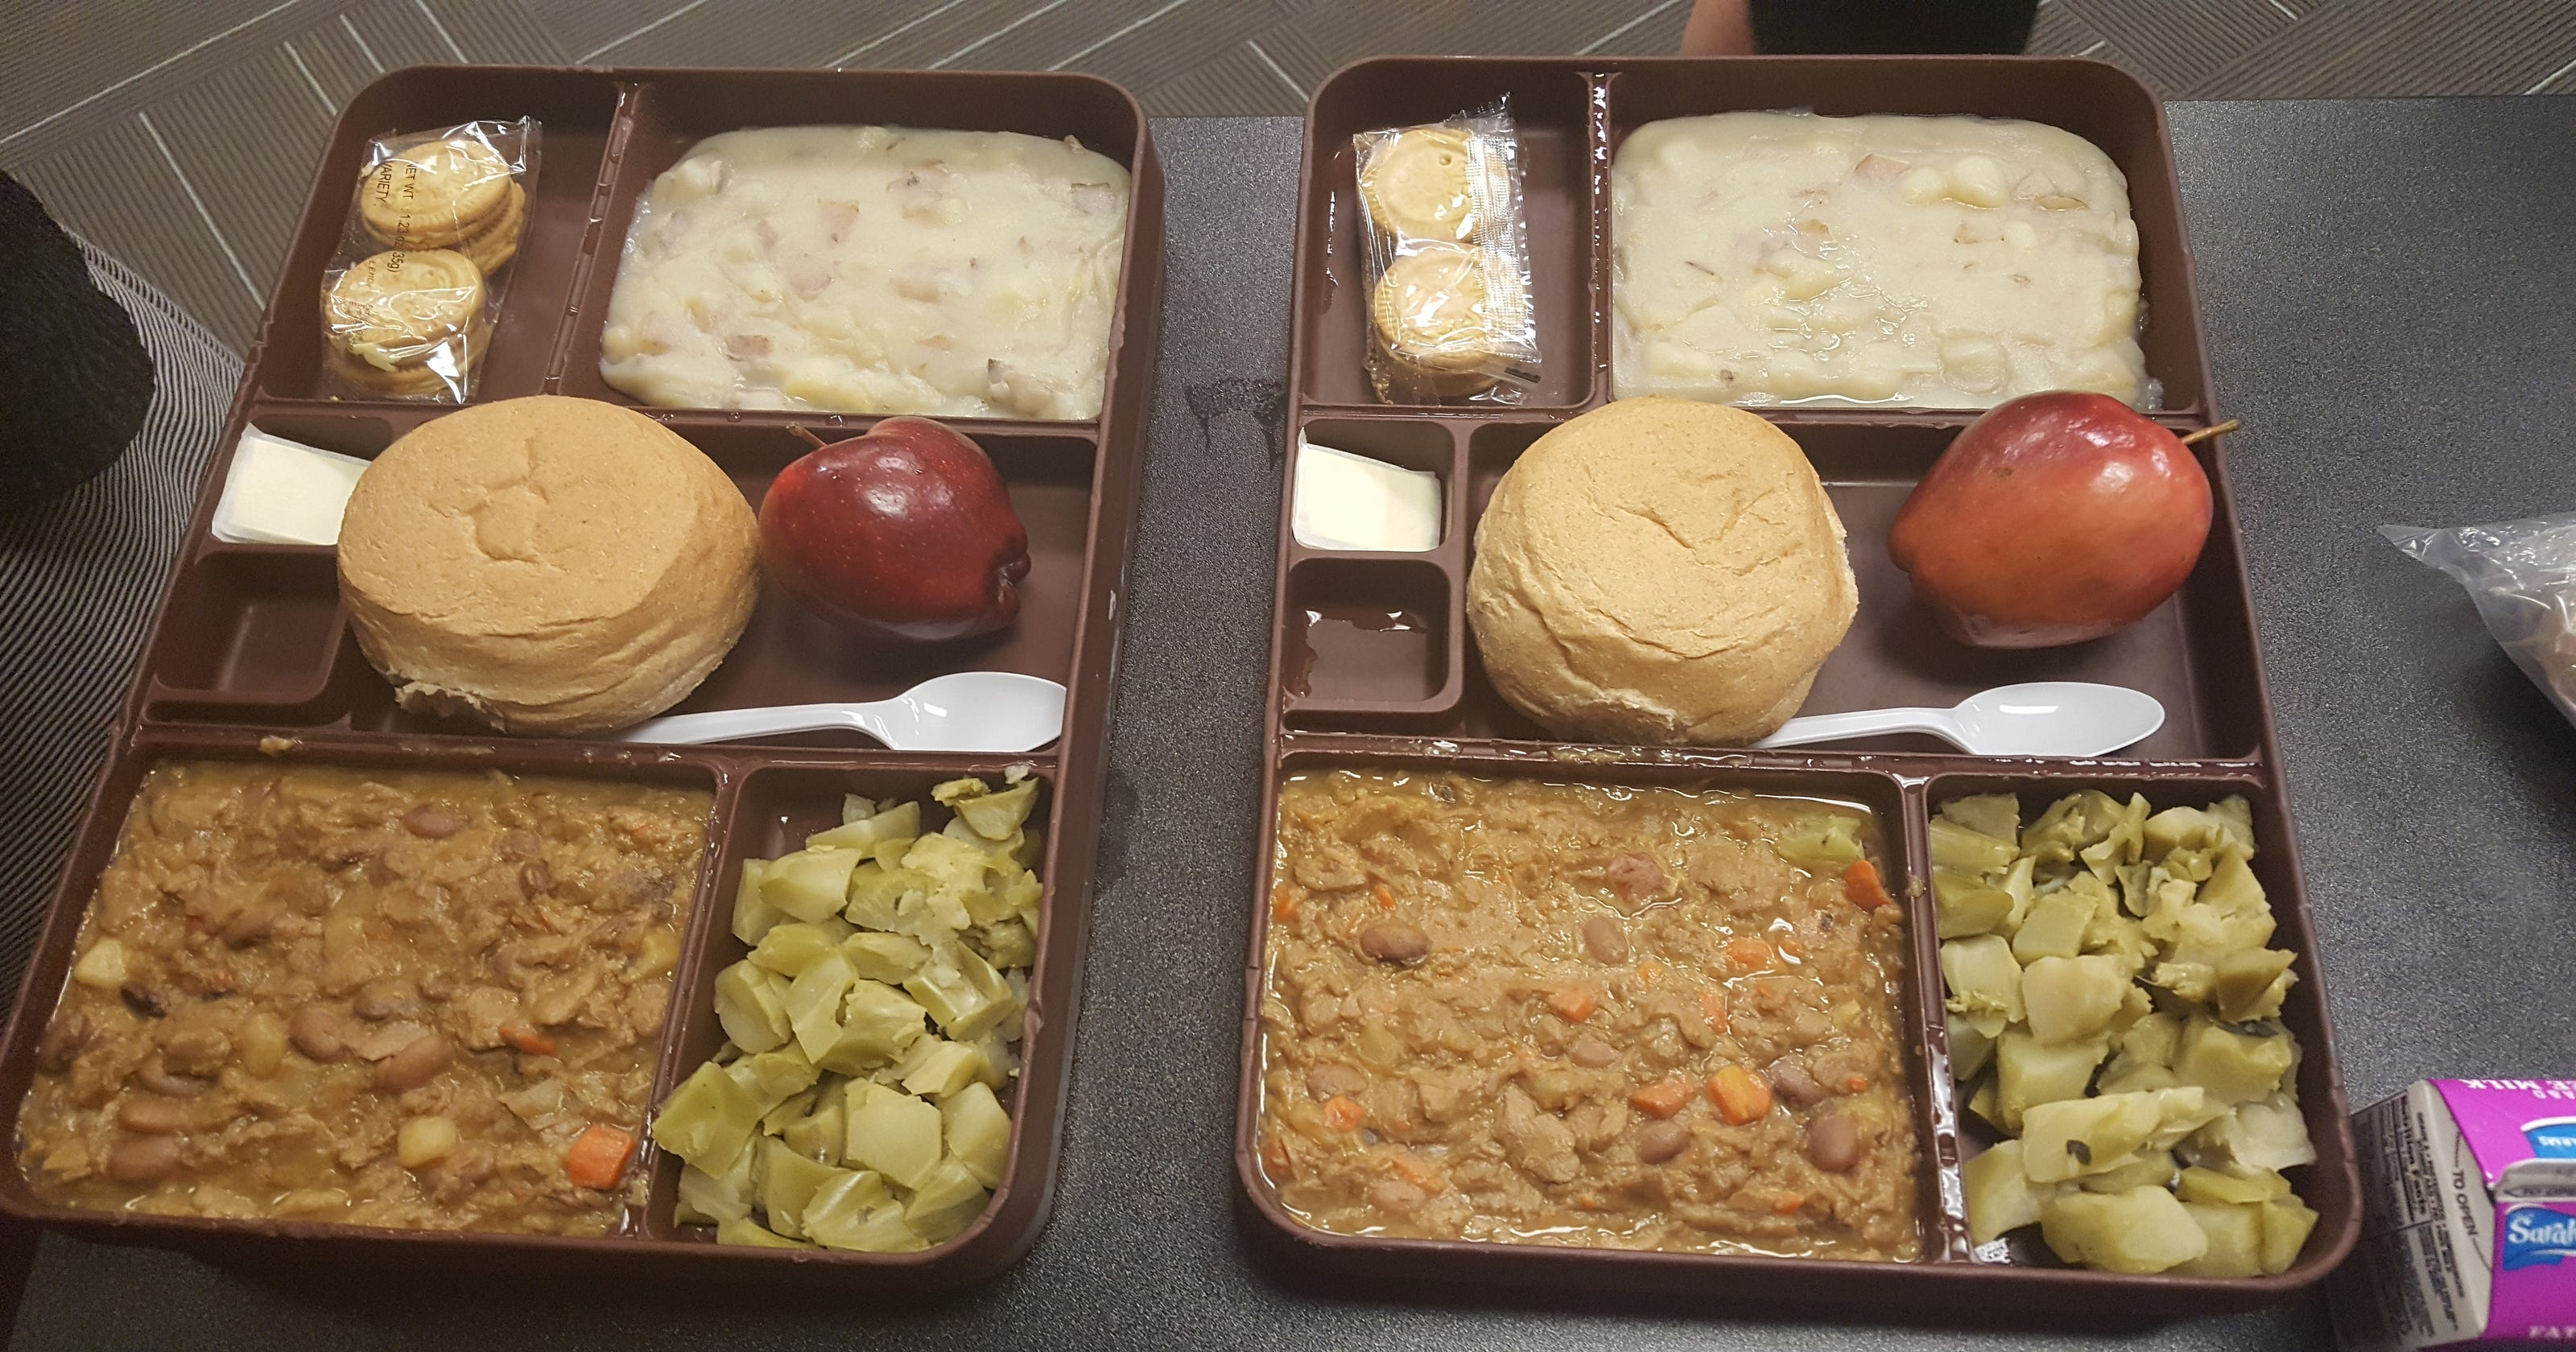 Penzone Maricopa County Jail Meals Sufficient Media Offered A Taste